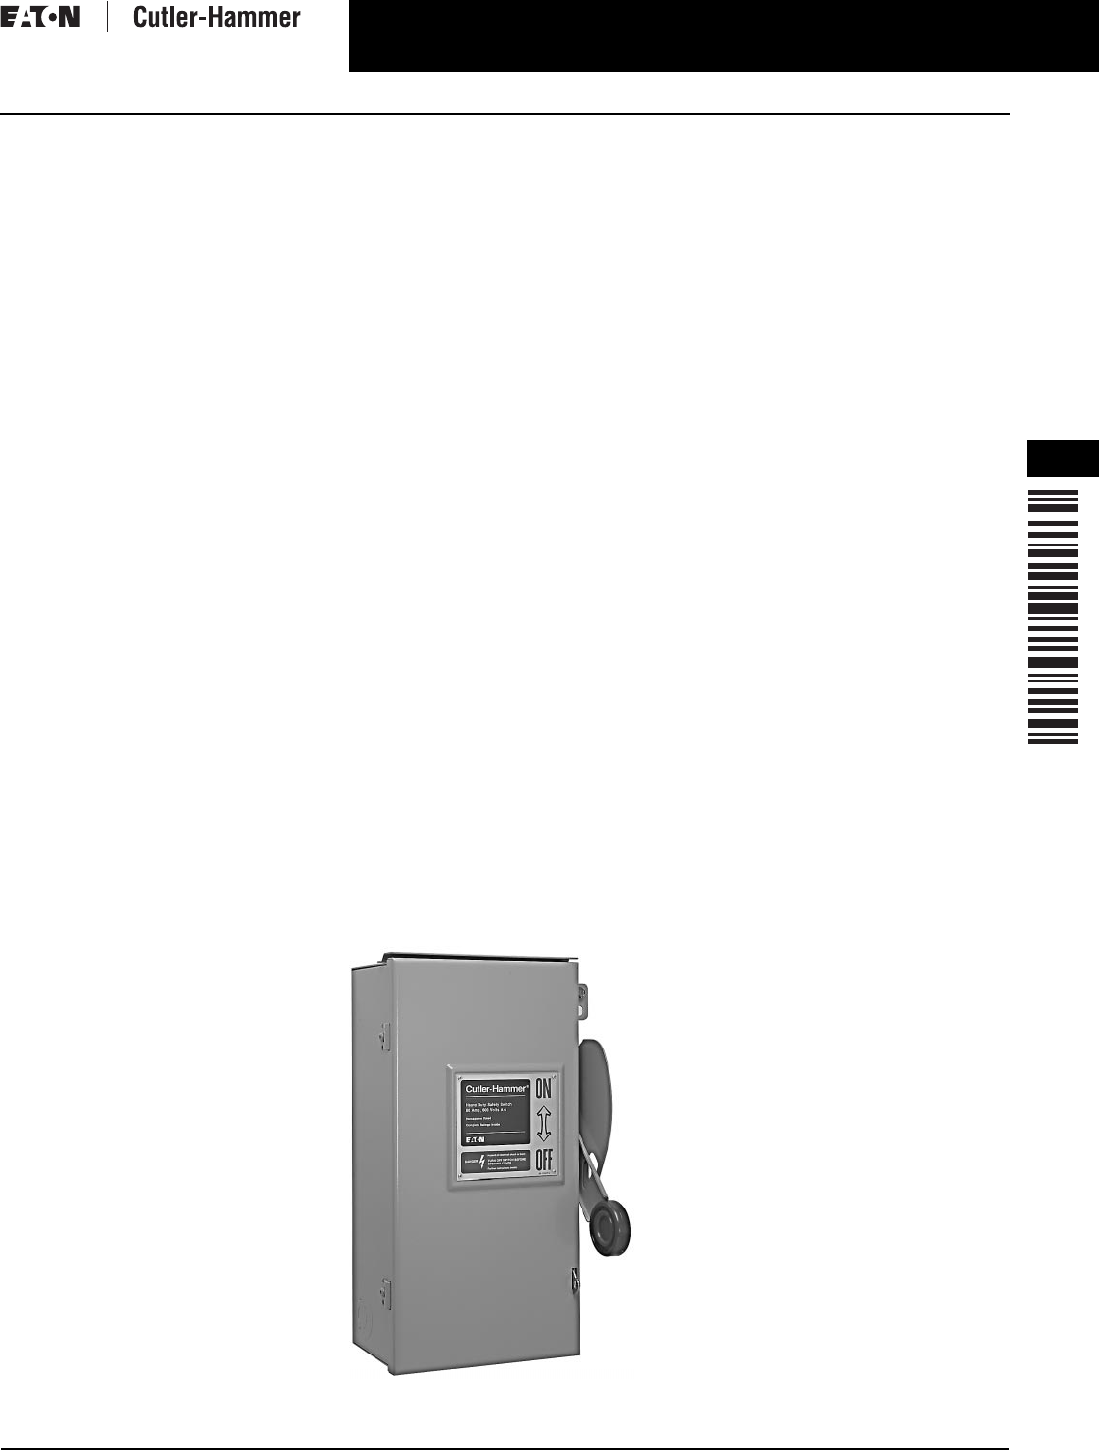 Peachy Eaton Safety Switches And Enclosed Circuit Breakers Ca08101001E Wiring Cloud Overrenstrafr09Org